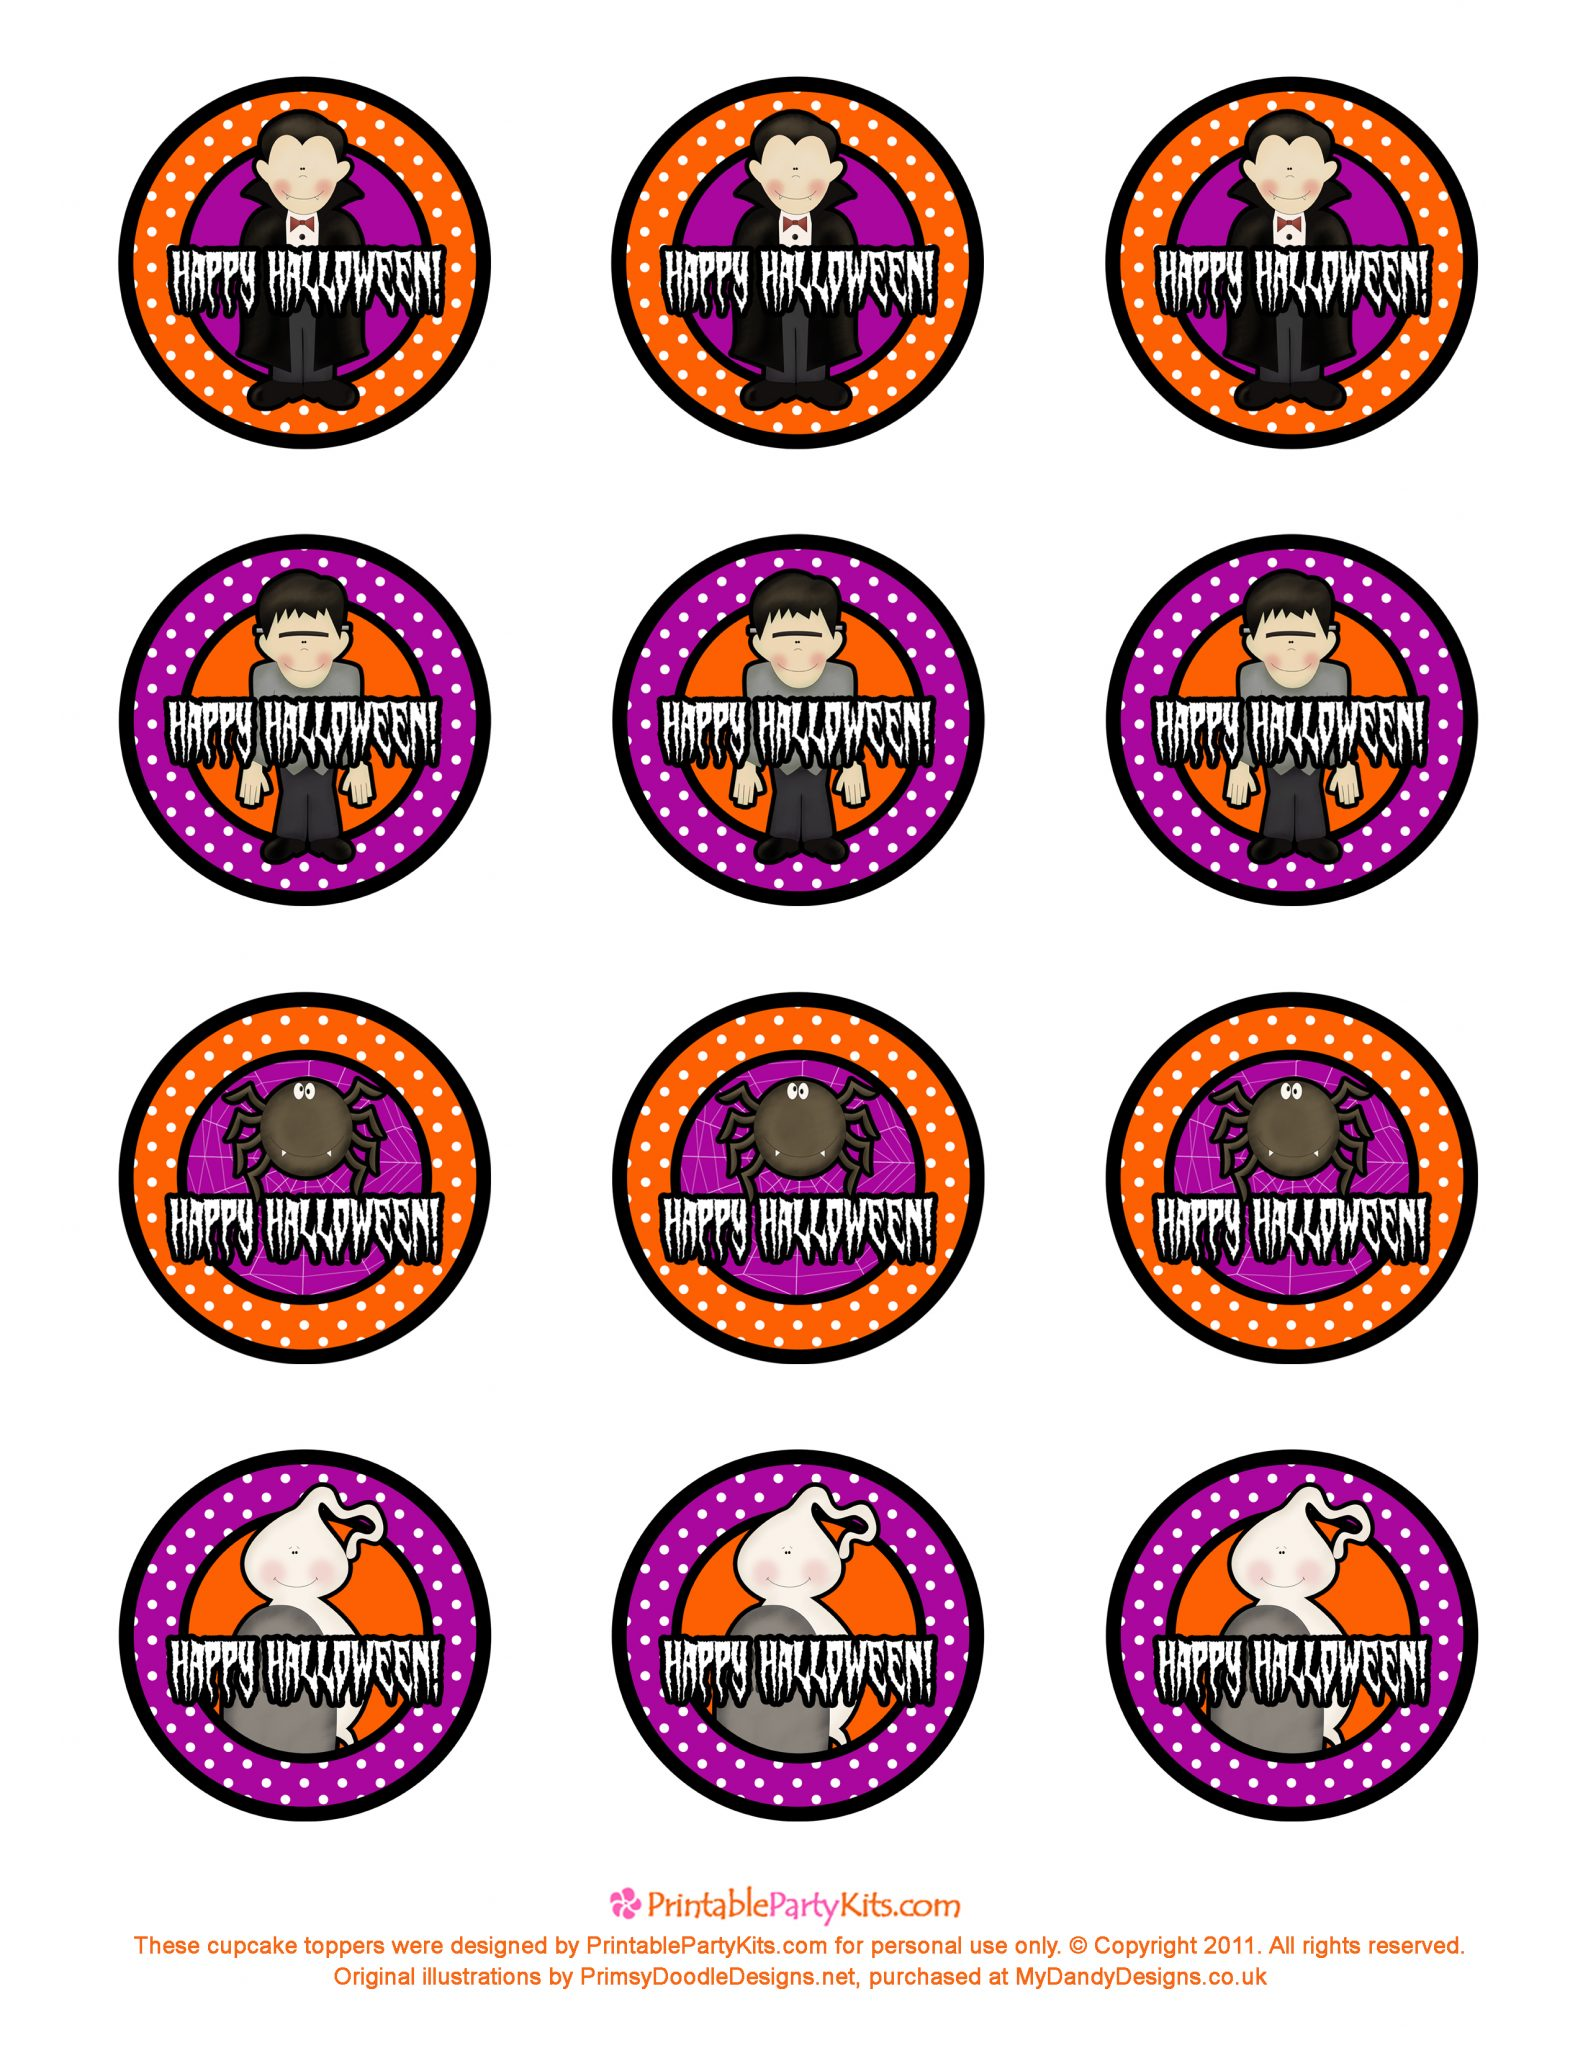 Free Halloween Cupcake Topper Template - Printable Party Kits